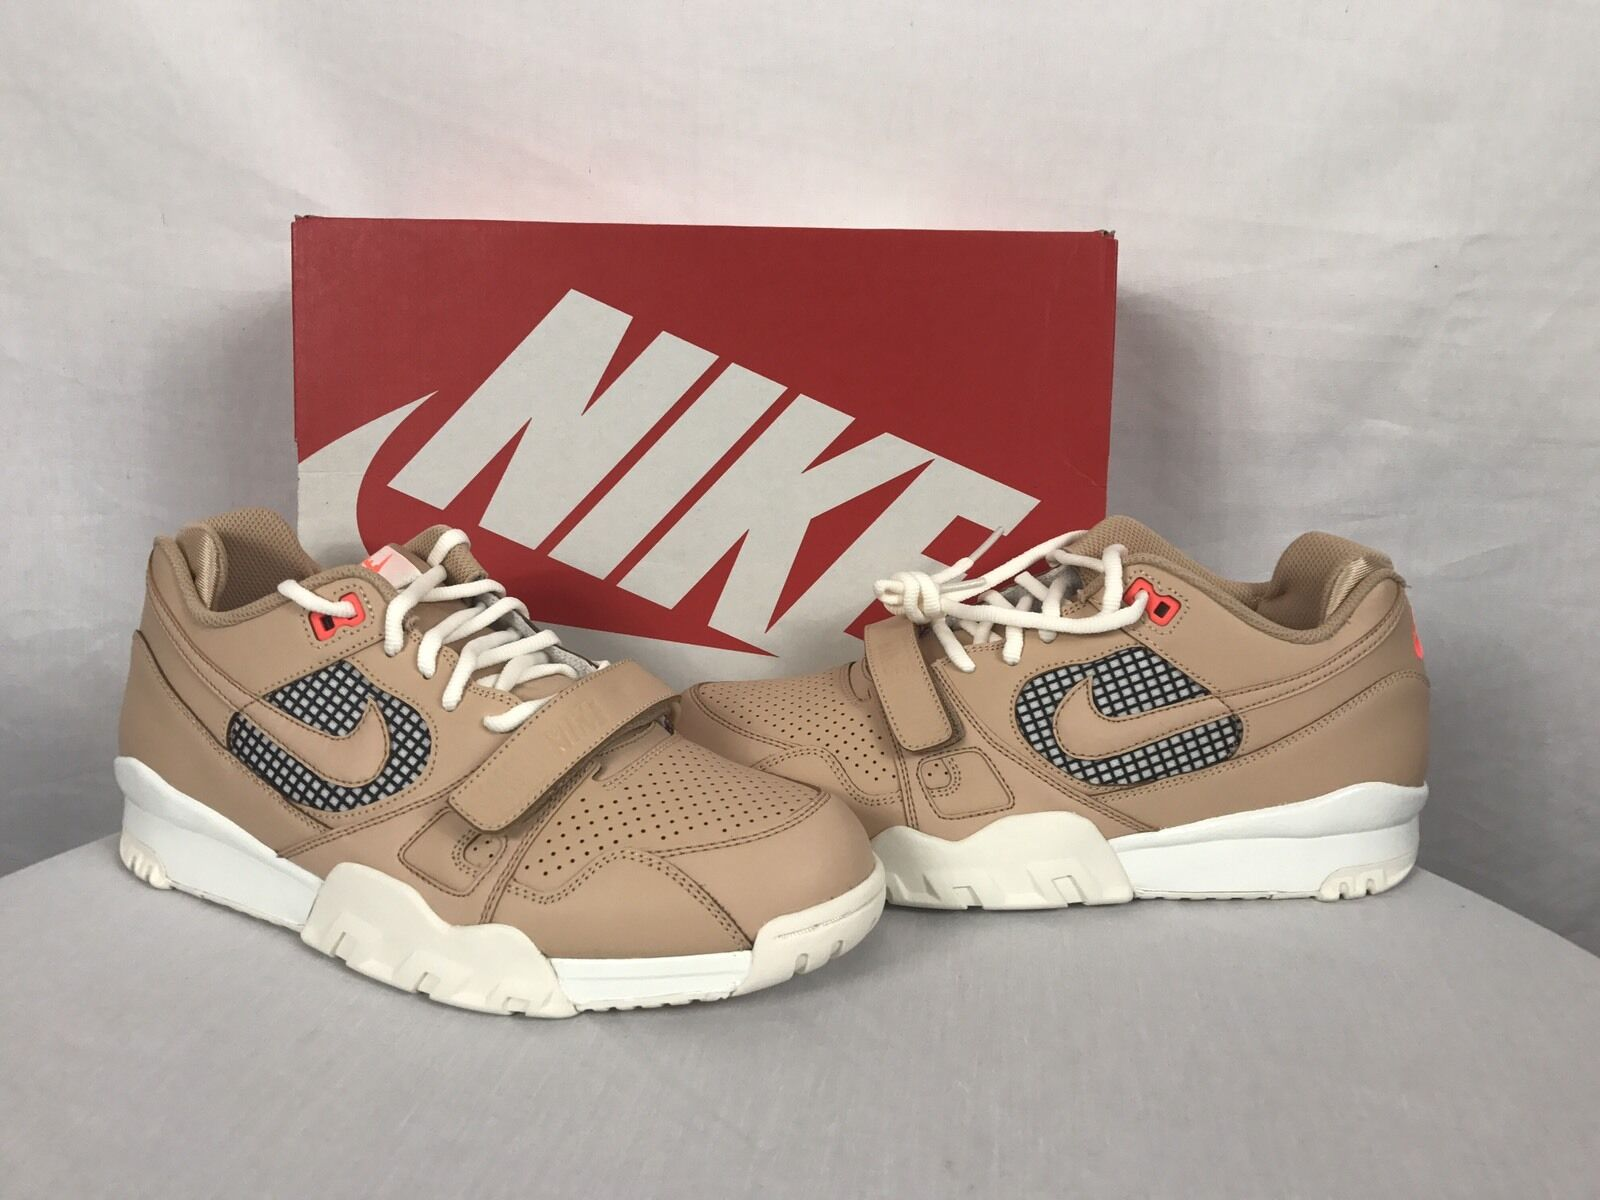 NEW  Men's Nike Air Trainer 2 Low Size 10.5 With Box 371739-200